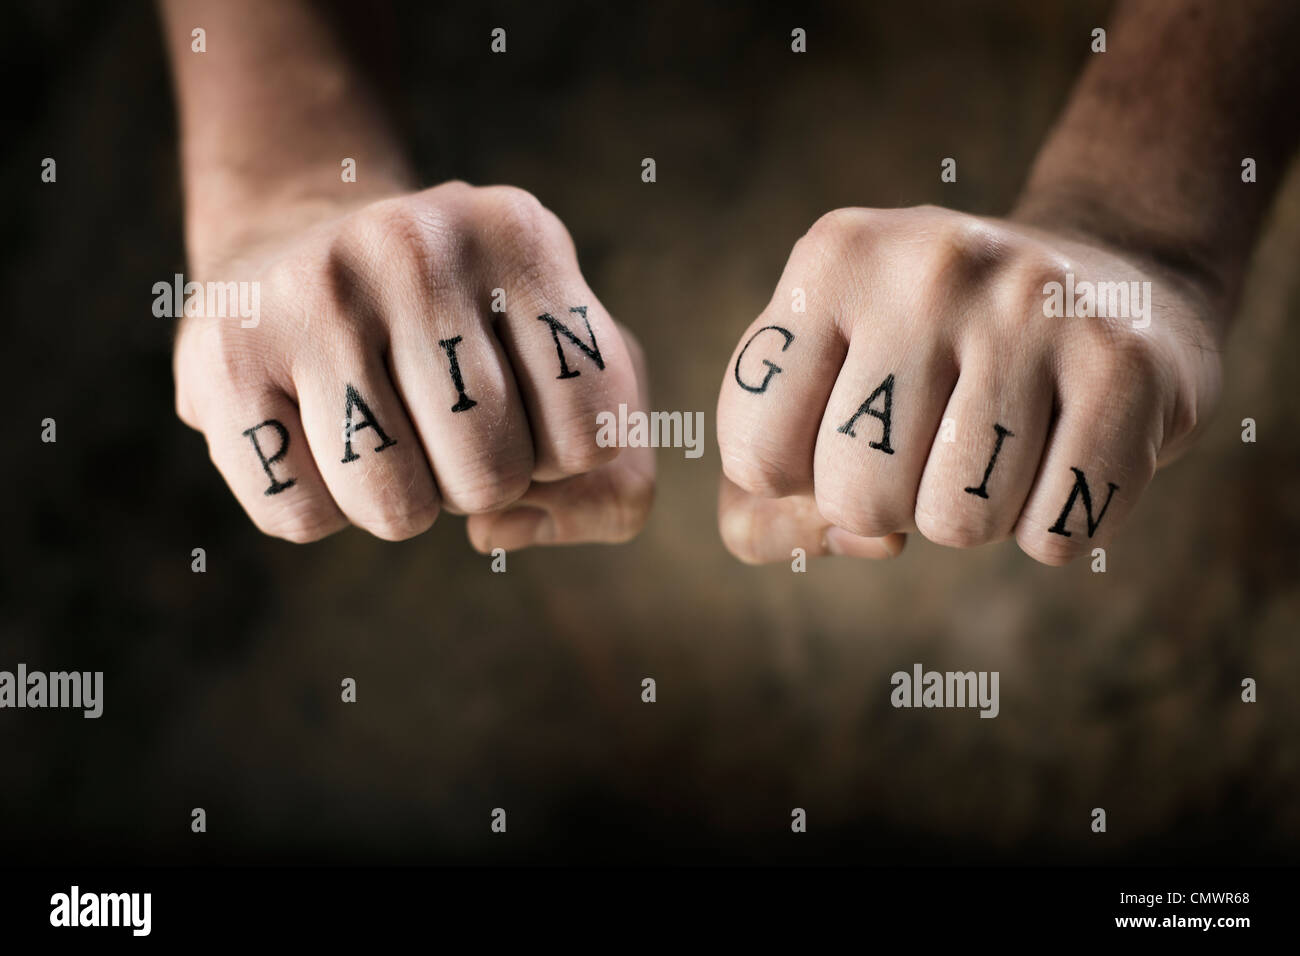 Man with fake tattoos 'Pain' and 'Gain' on his hands, referring to the exercise motto 'No Pain, - Stock Image